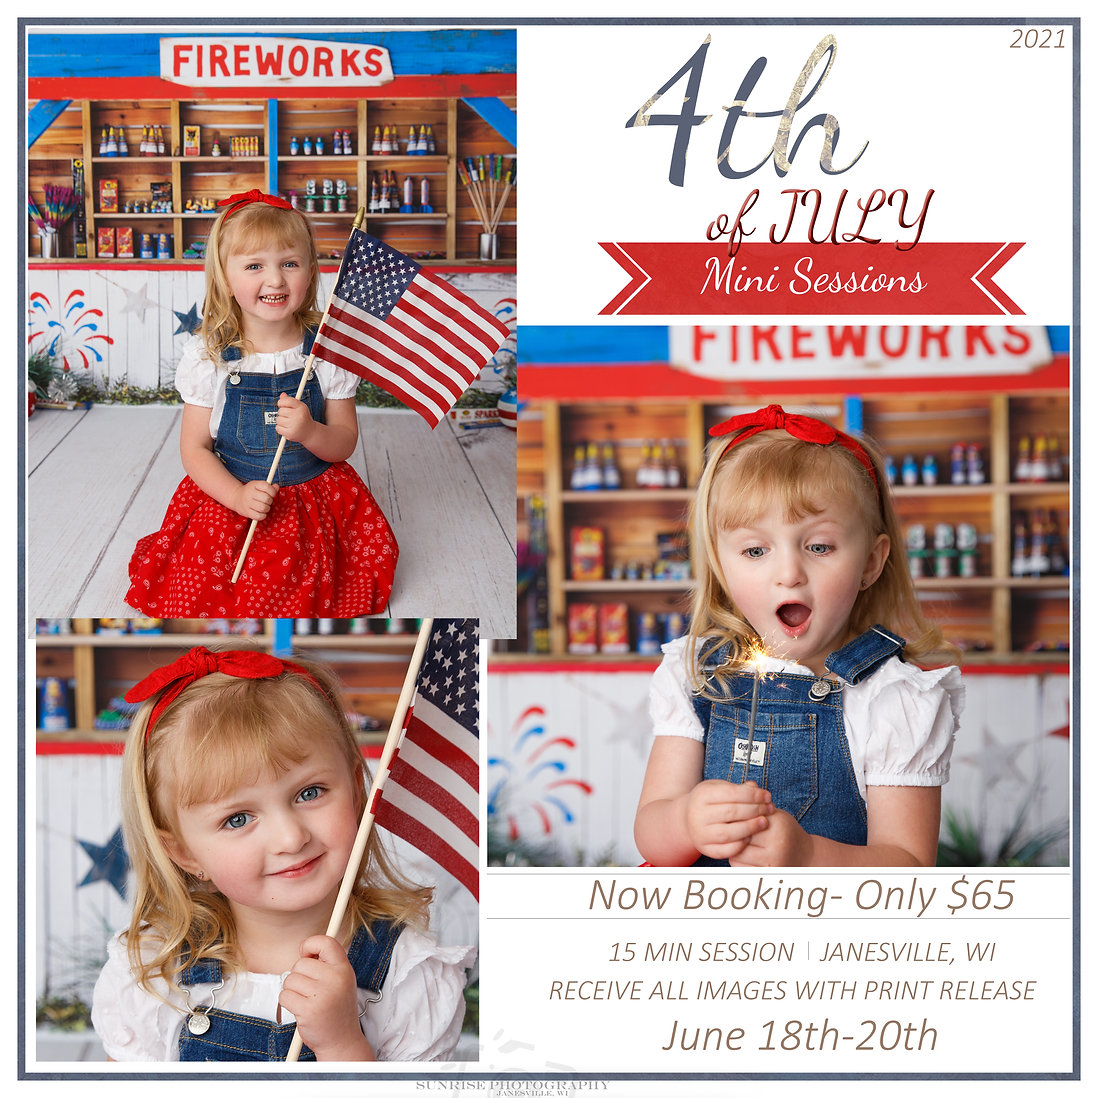 4th of July facebook promo pic.jpg